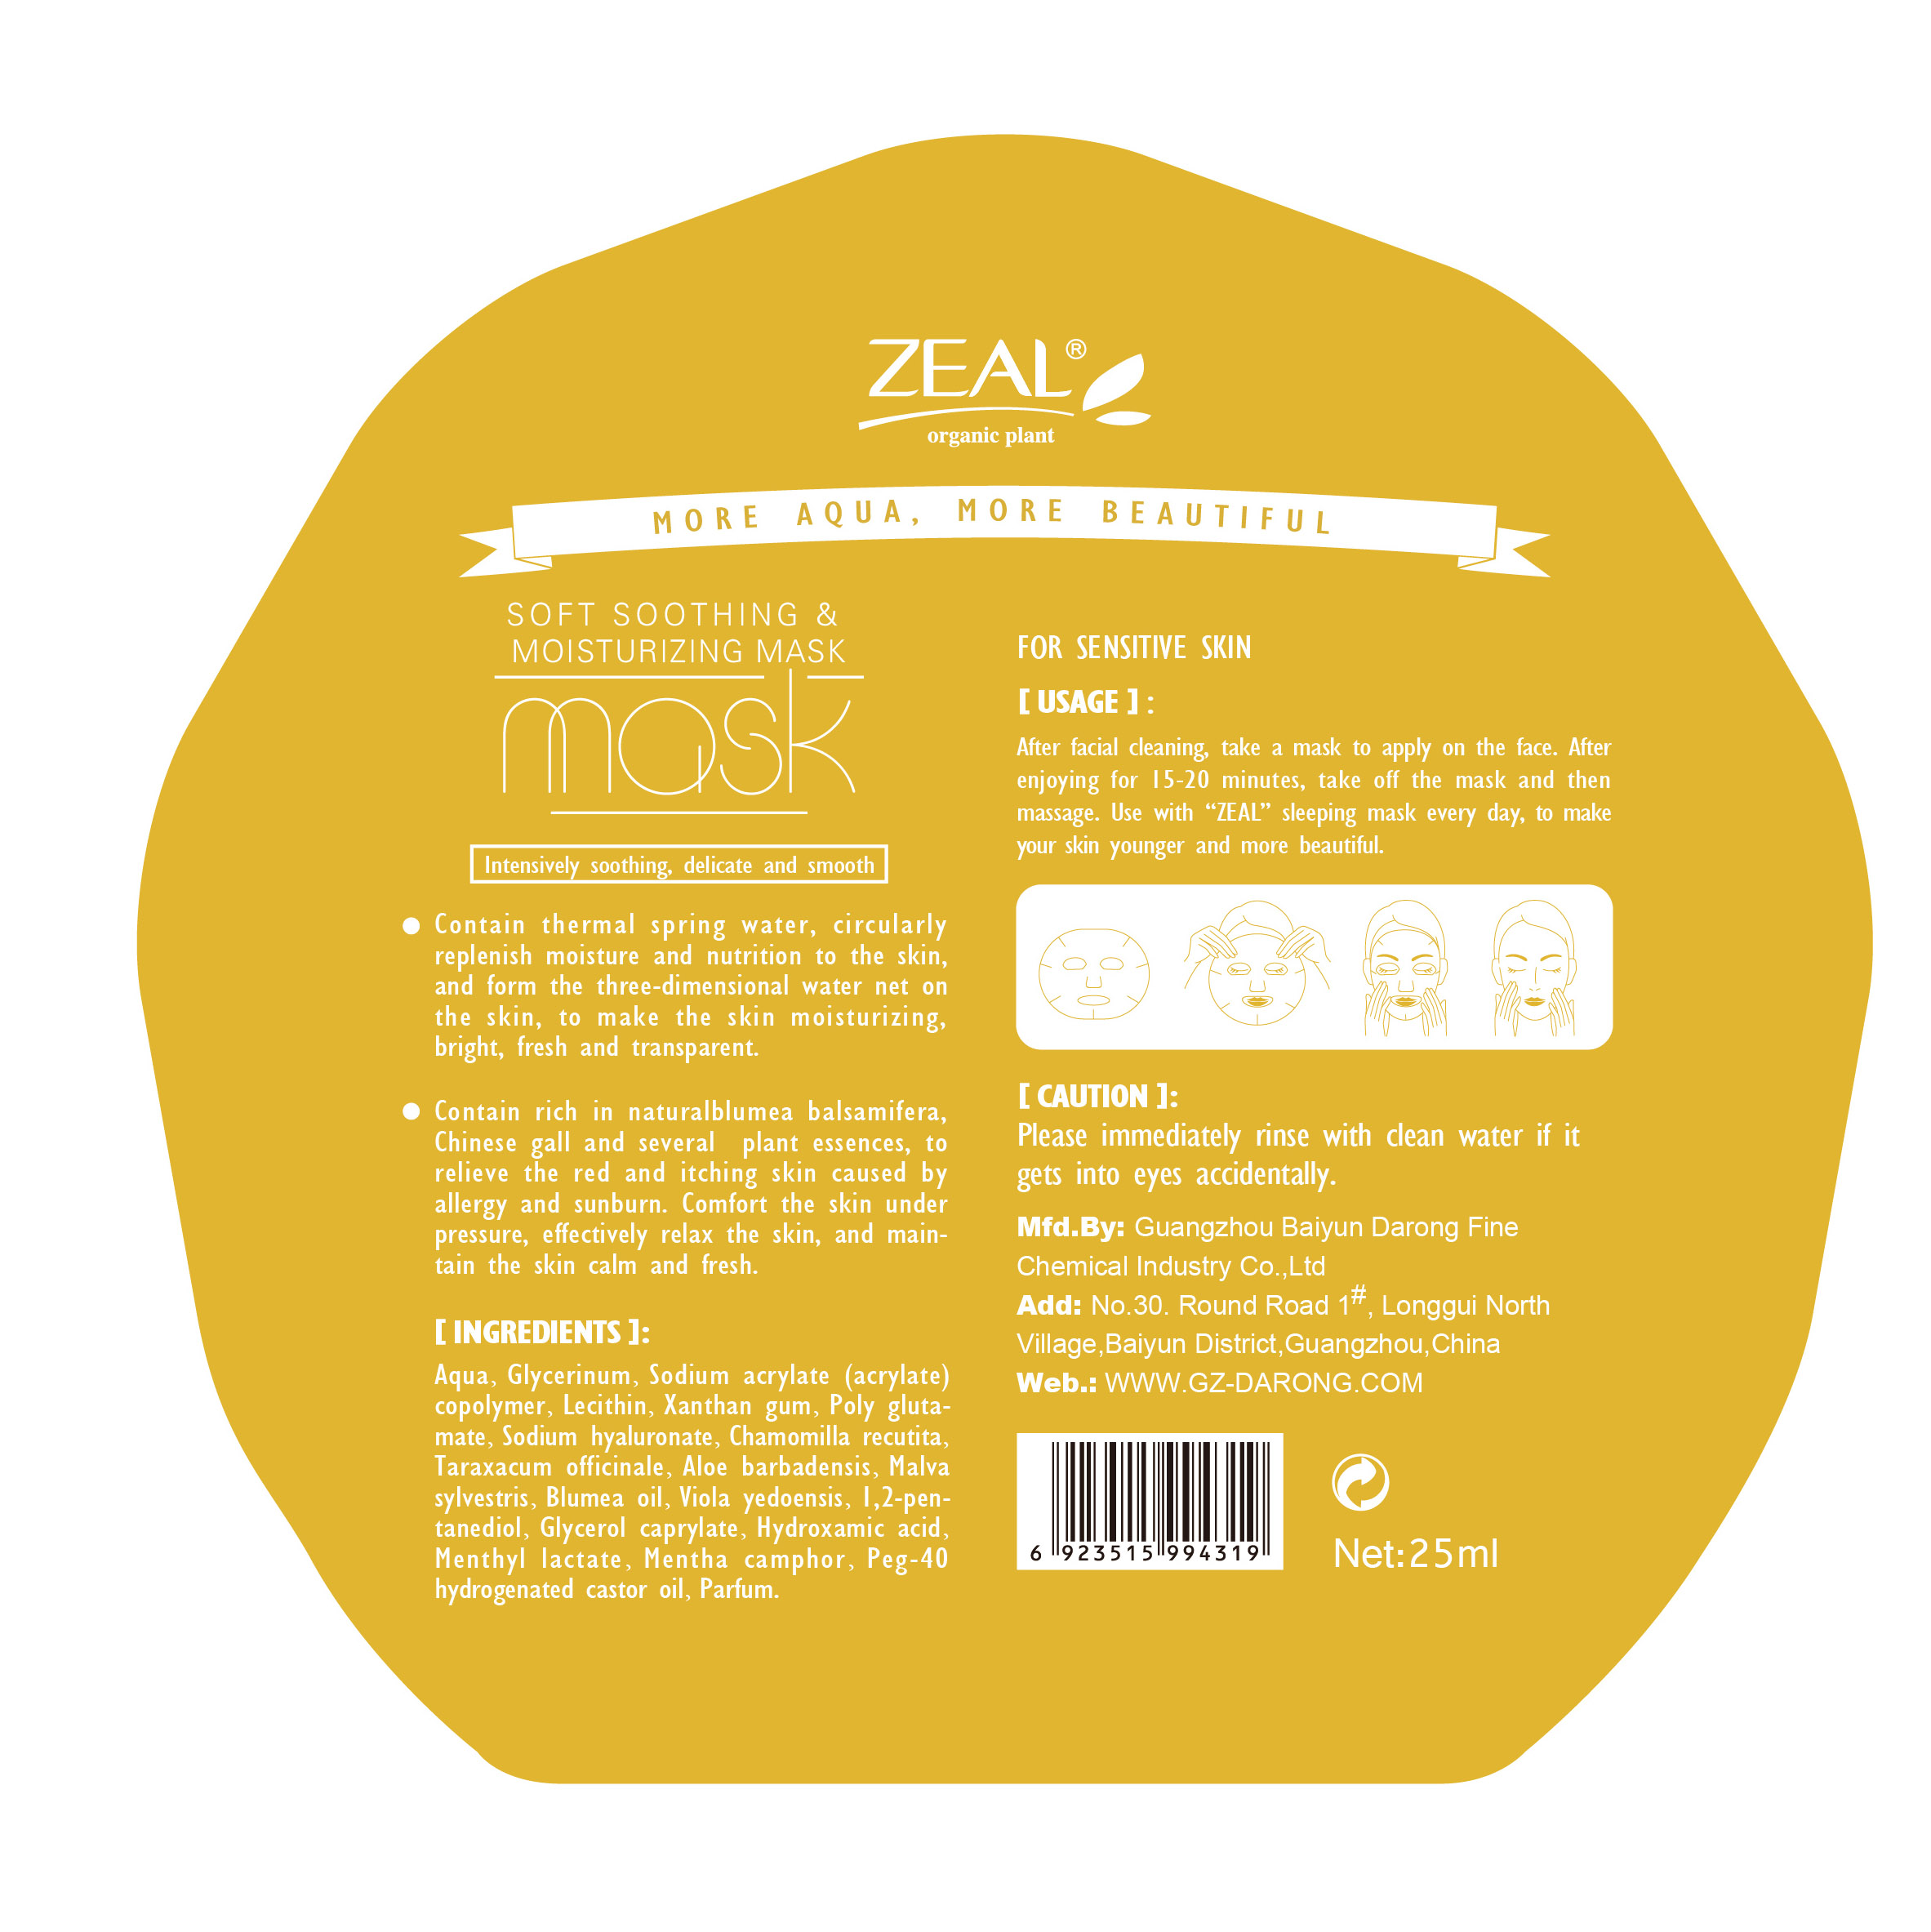 Zeal Natural Plant Soft Soothing & Moisturizing Blumea Balsamifera Facial Mask 25g